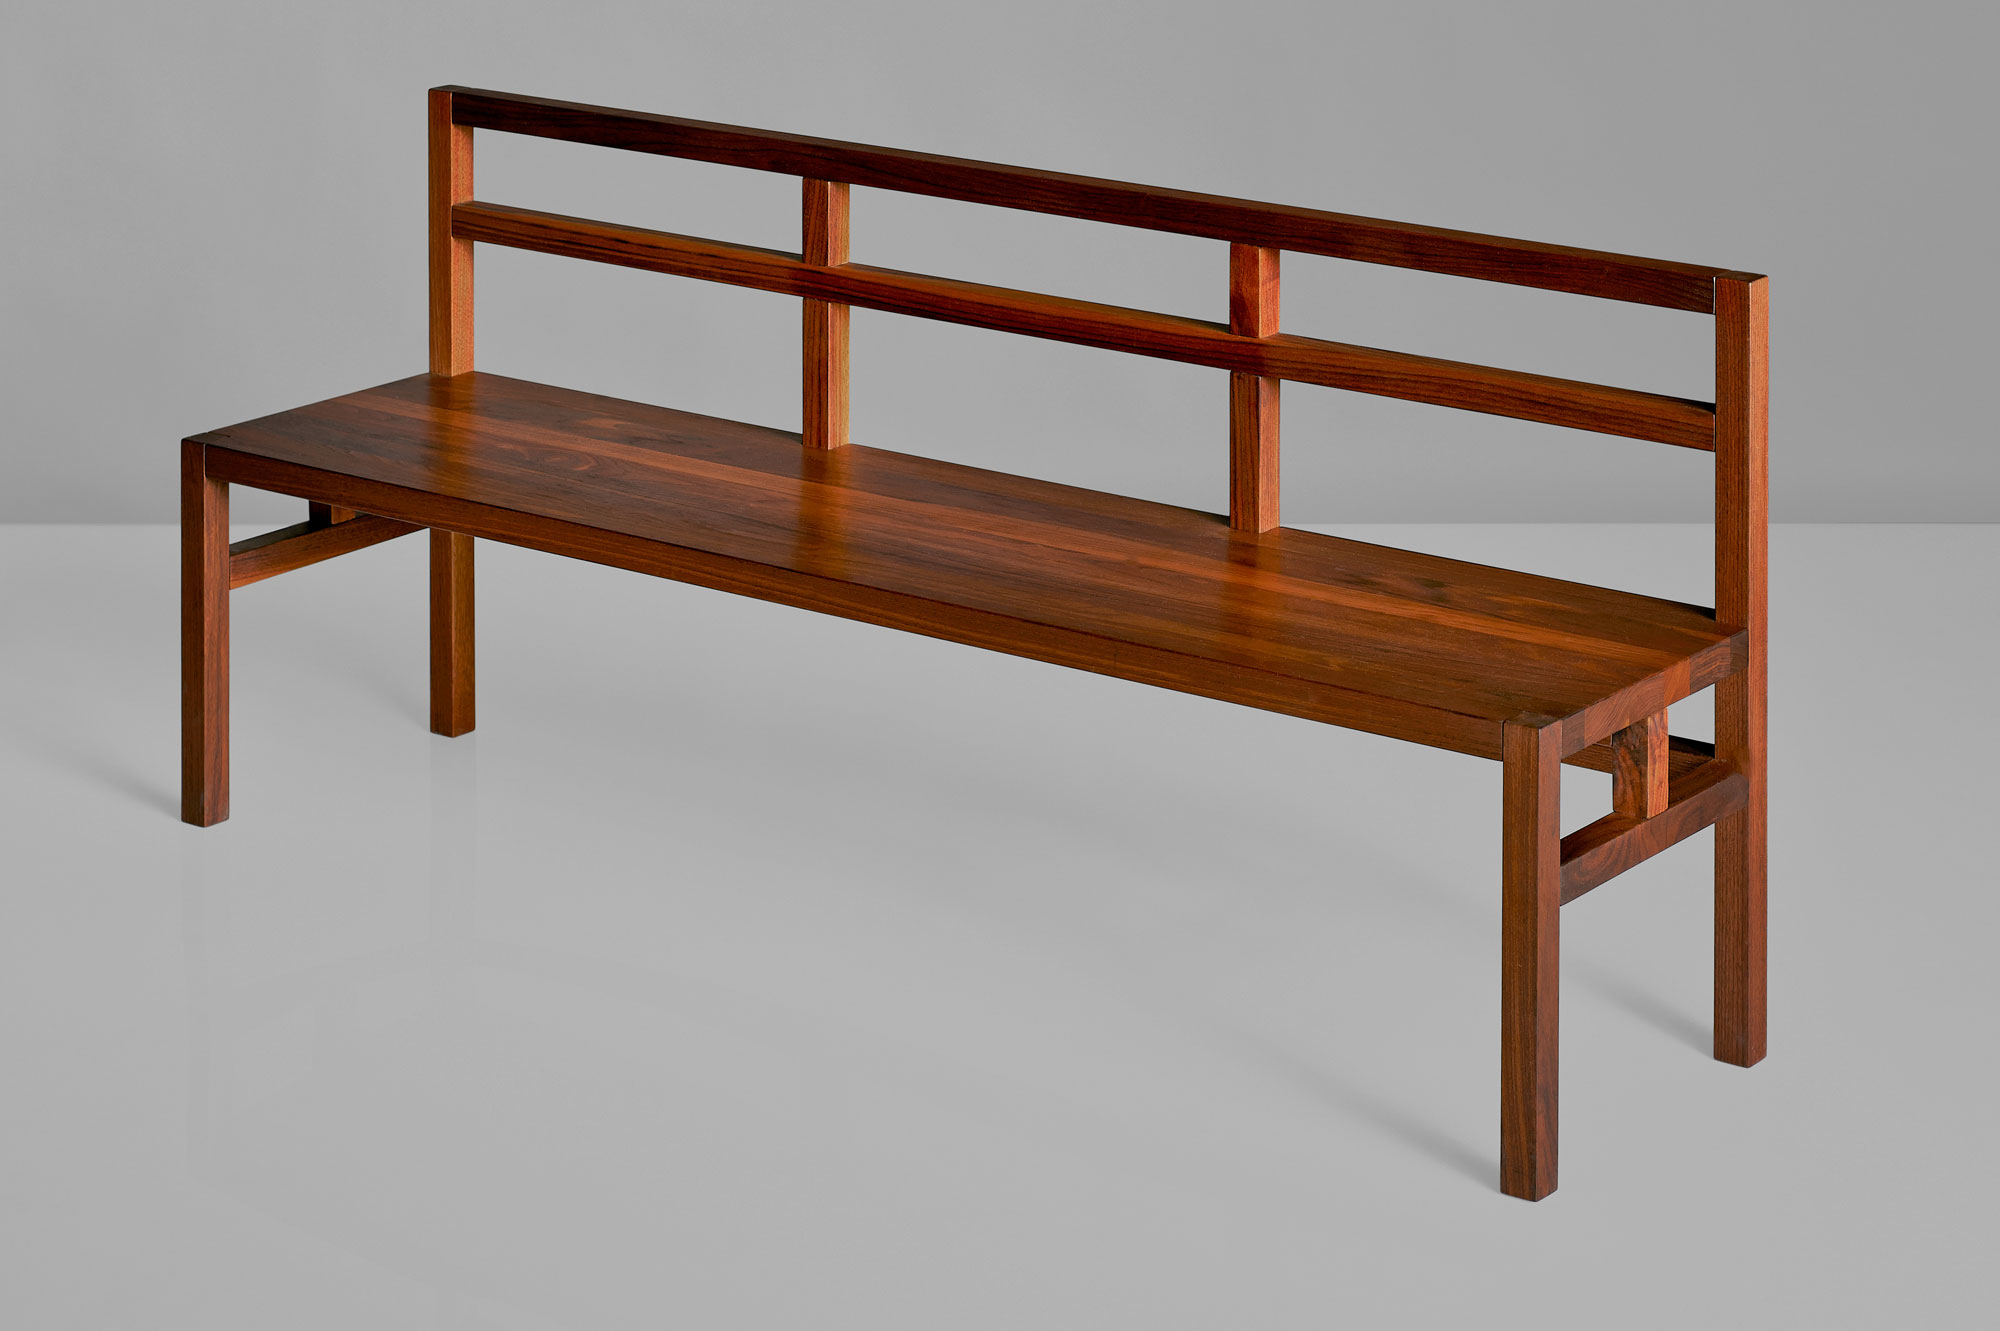 Bench with Backrest SENA RL viA custom made in solid wood by vitamin design